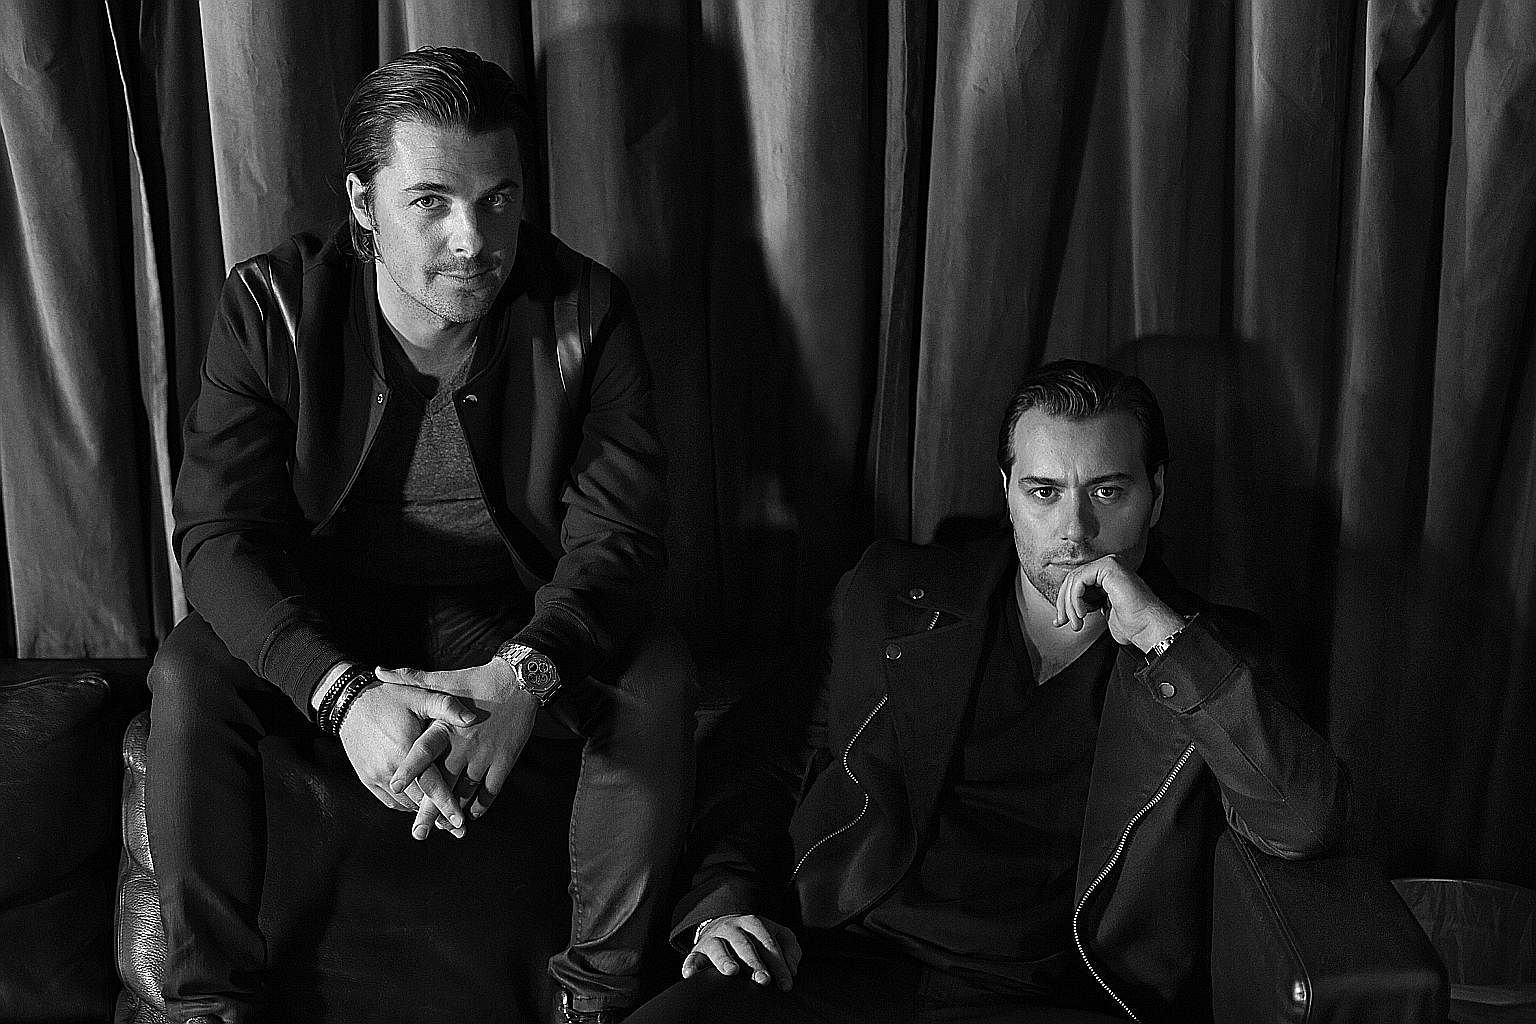 Swedish duo Axwell and Ingrosso played at ZoukOut 2015 and will be back this year.